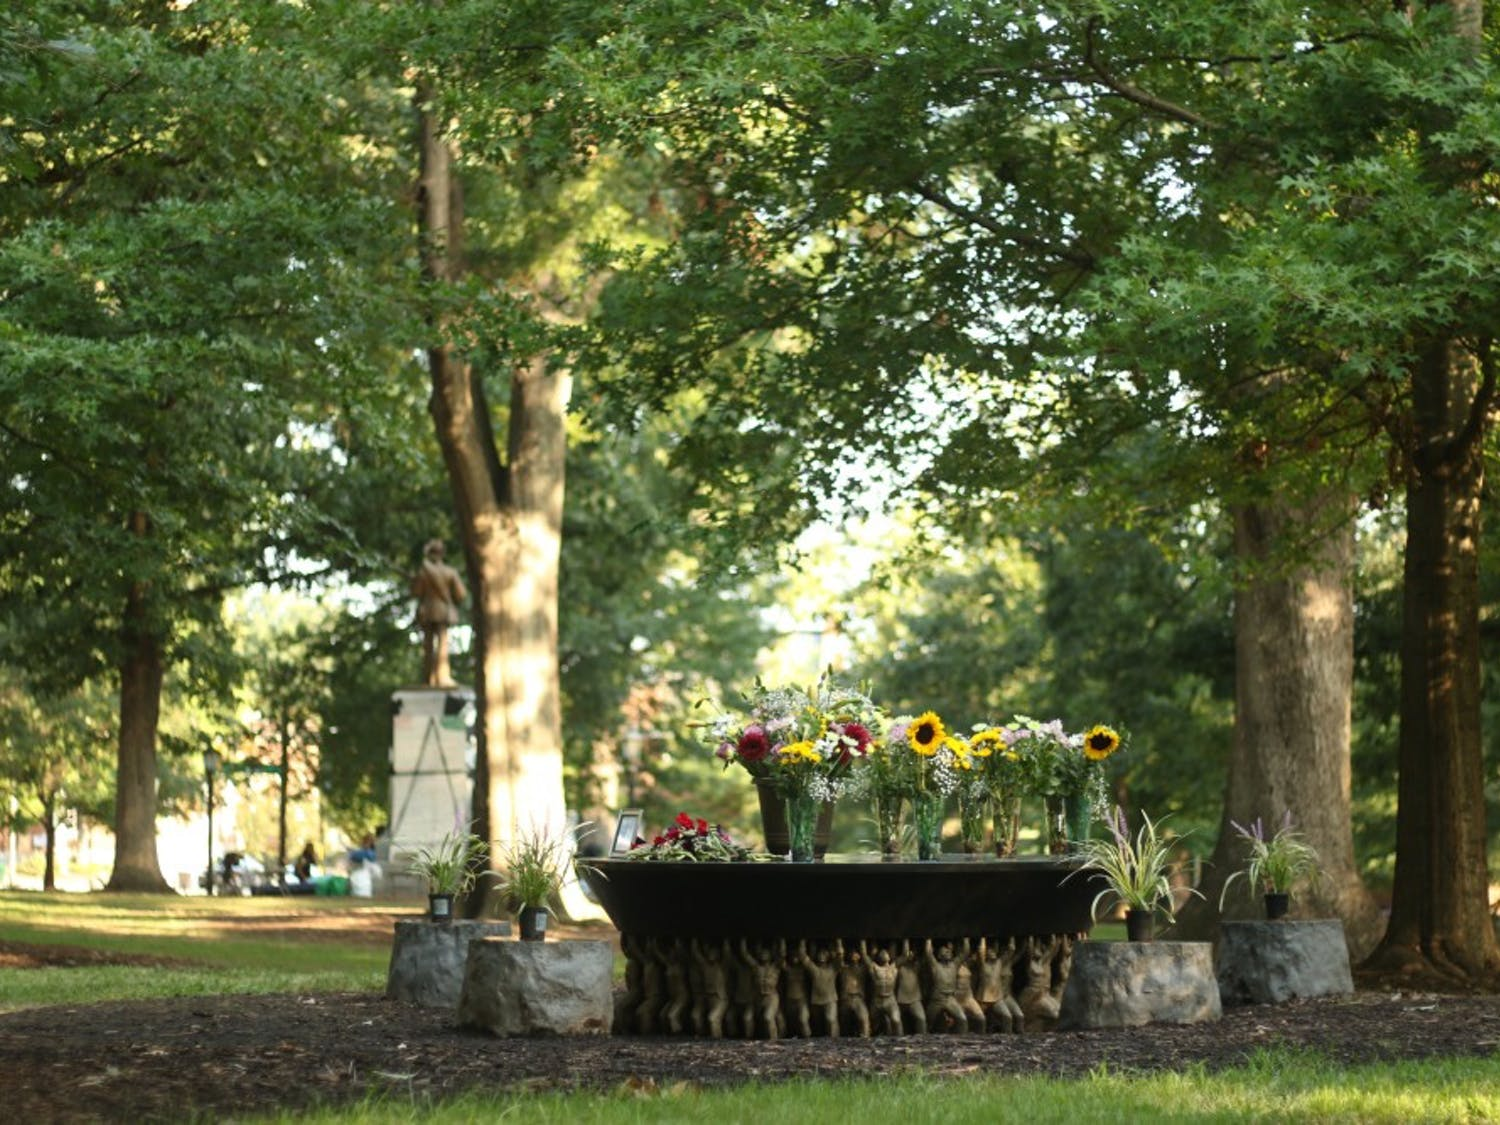 The Unsung Founders Memorial was a subject of debate earlier this year, 2017, during the Silent Sam sit-in.